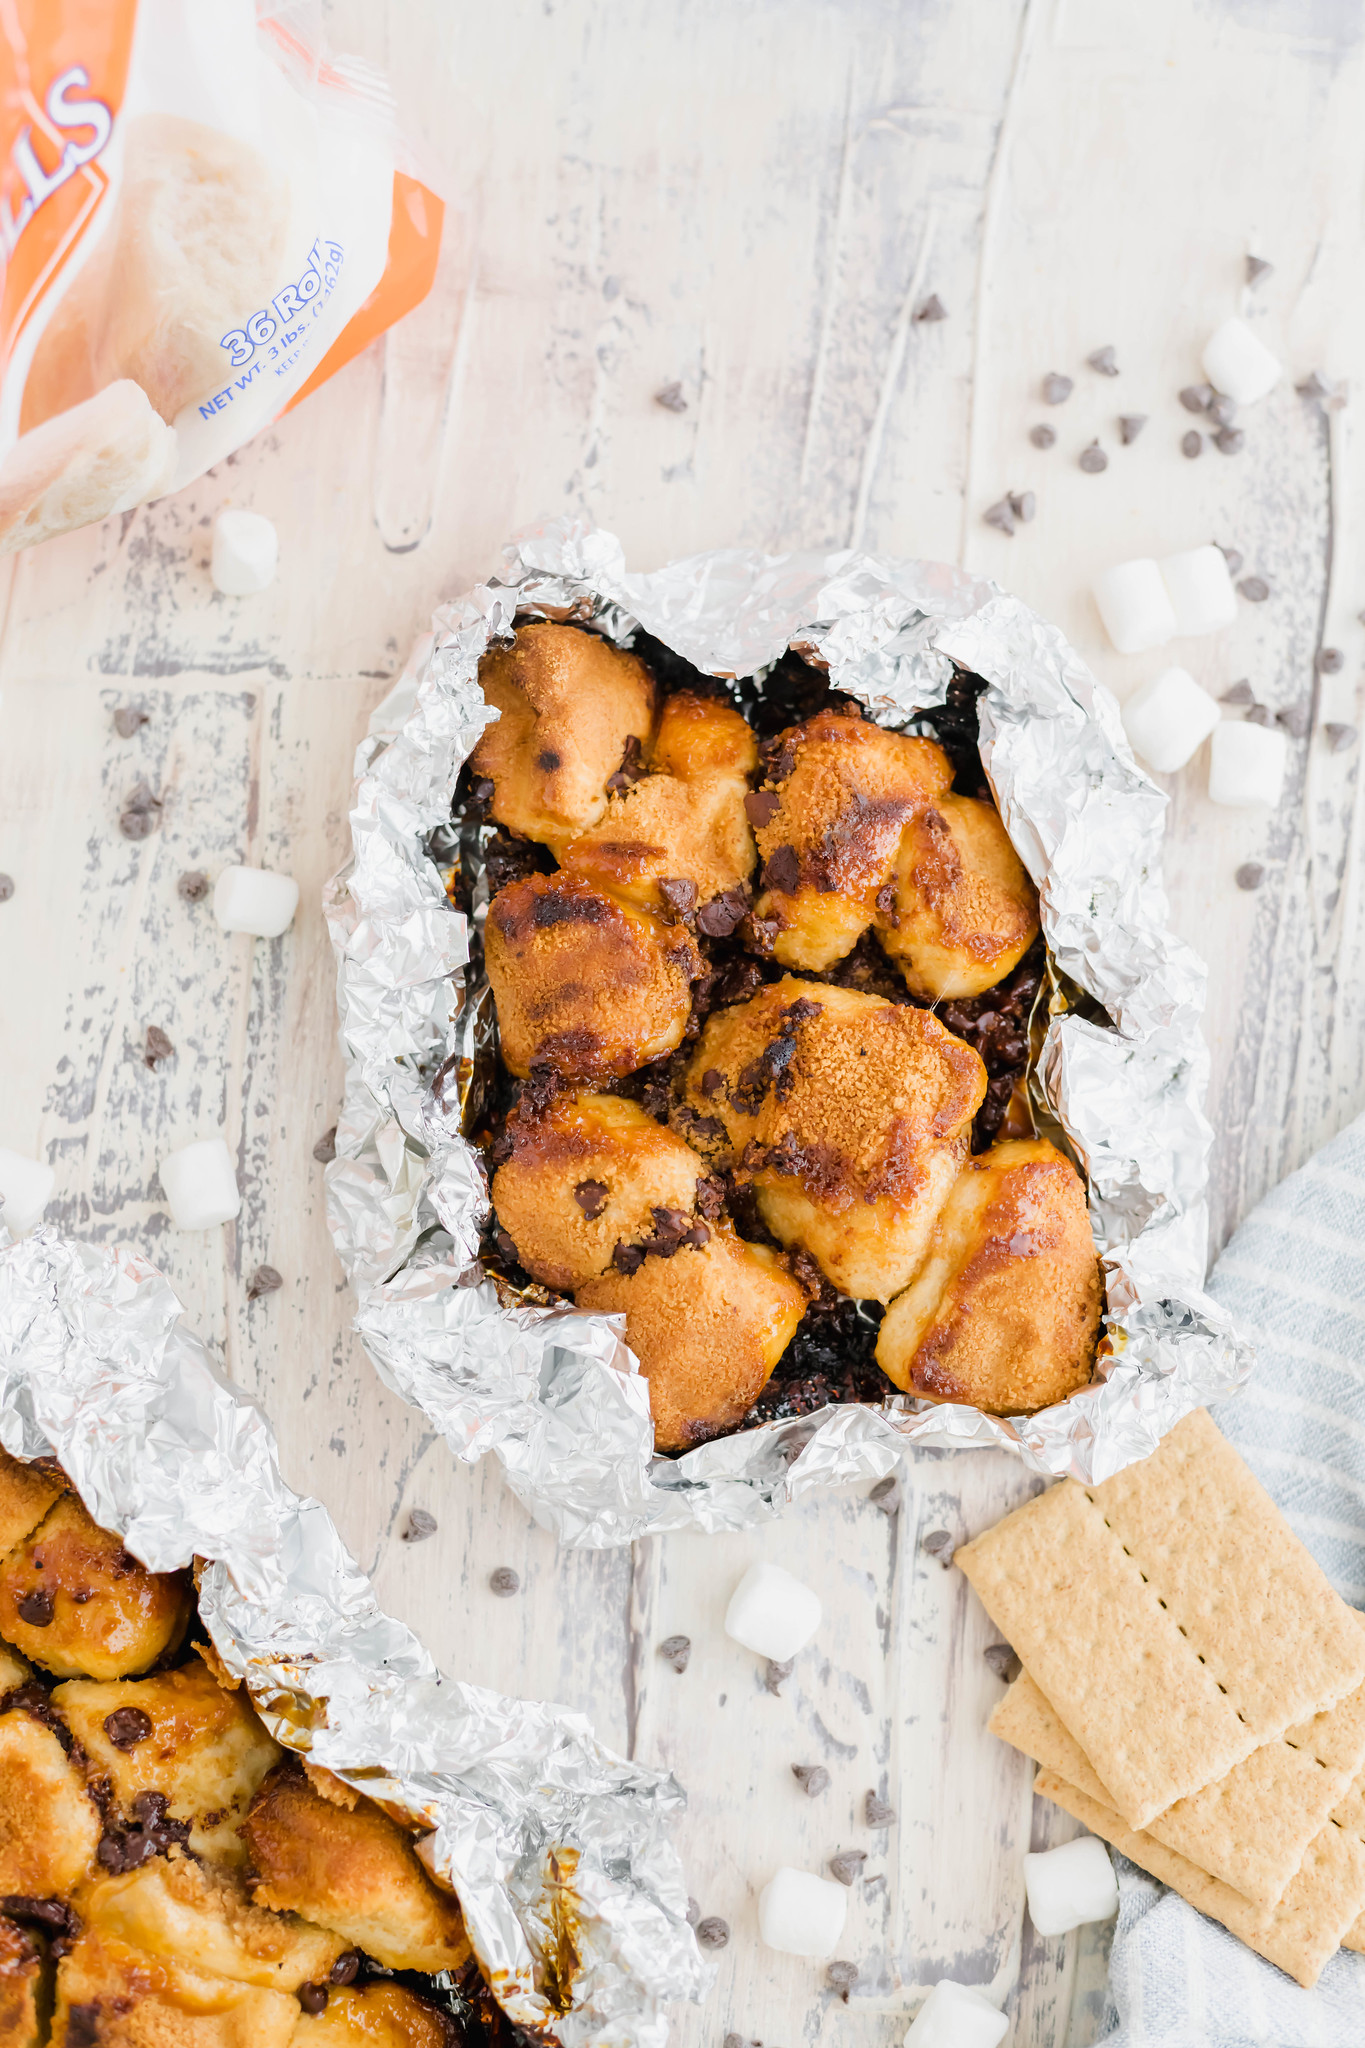 Summertime is upon us and this summer, we're firing up the grill for a super fun dessert featuring Rhodes Bake-N-Serv rolls. This Campfire S'mores Monkey Bread is super simple to make on the grill or in the oven for a fun spin on a summertime classic.